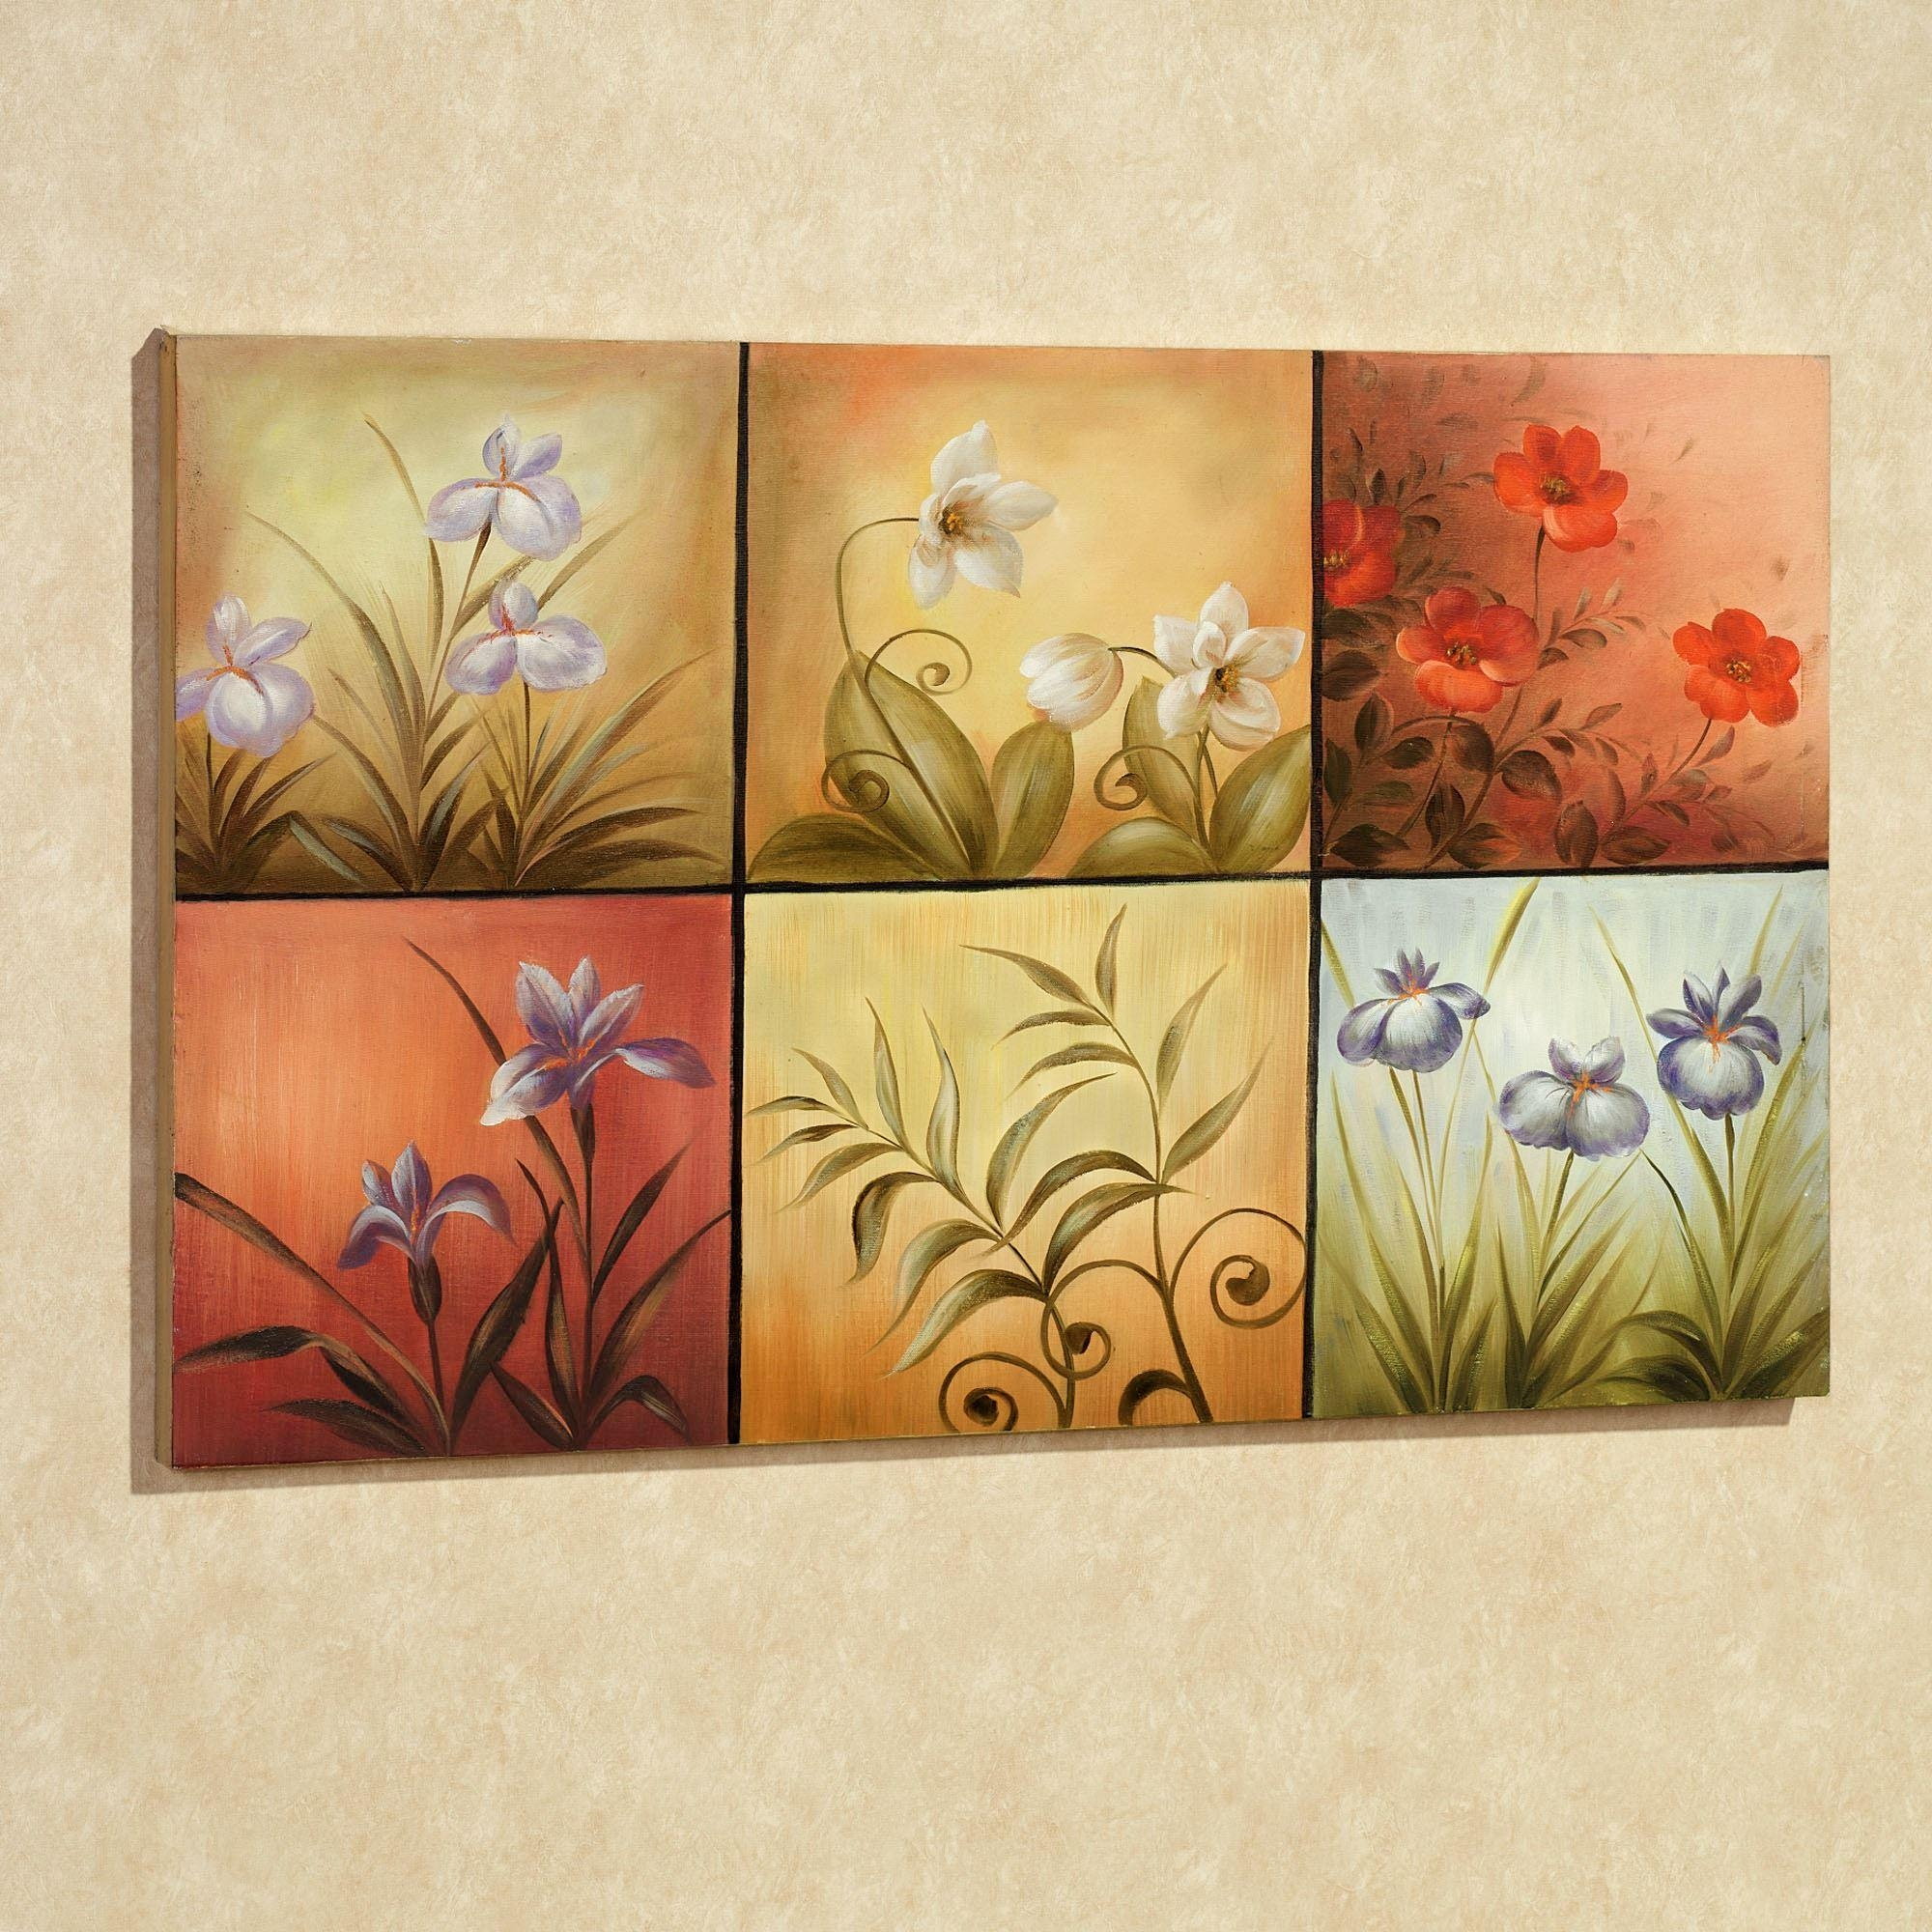 Floral Mystery Handpainted Canvas Wall Art Intended For Floral Wall Art Canvas (View 10 of 20)